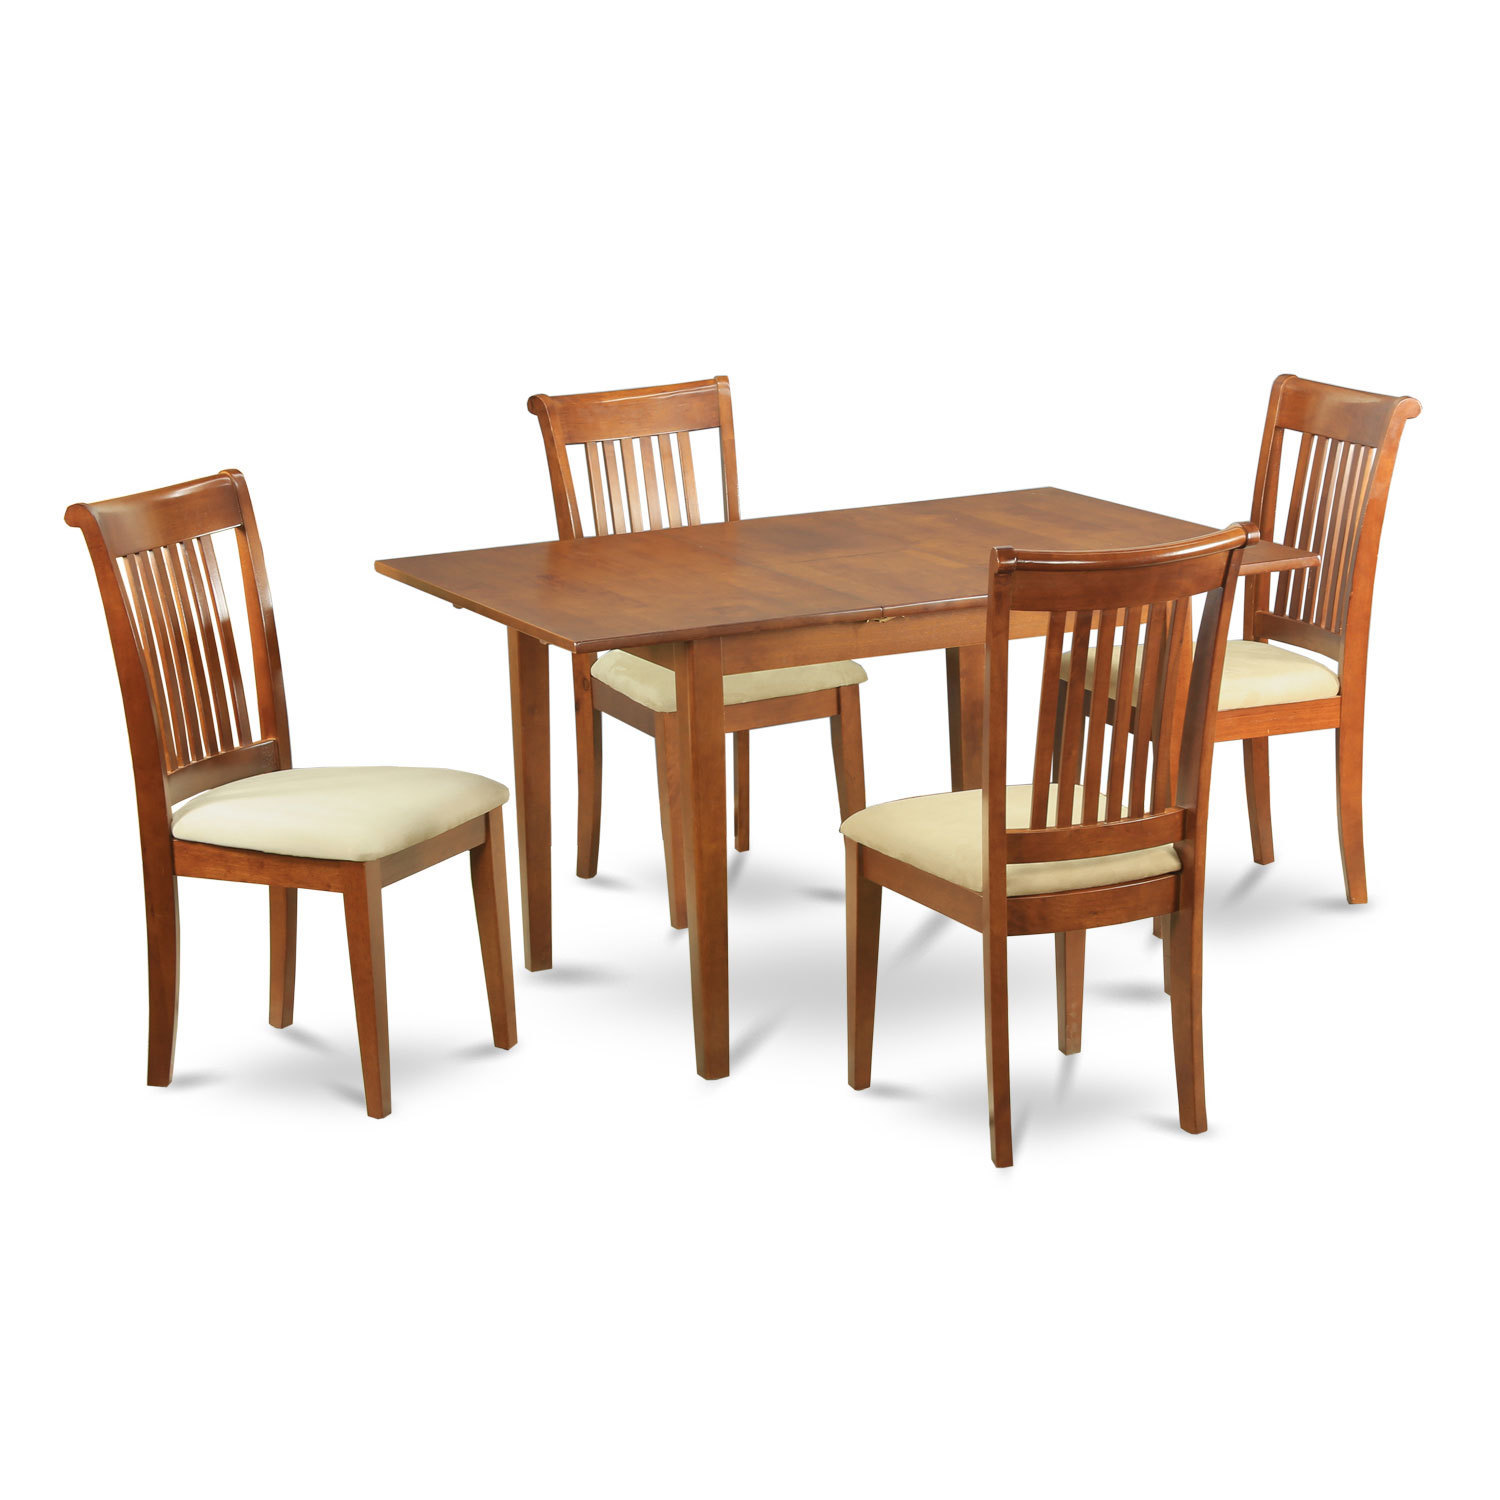 Small dinette set design homesfeed for Dinette furniture